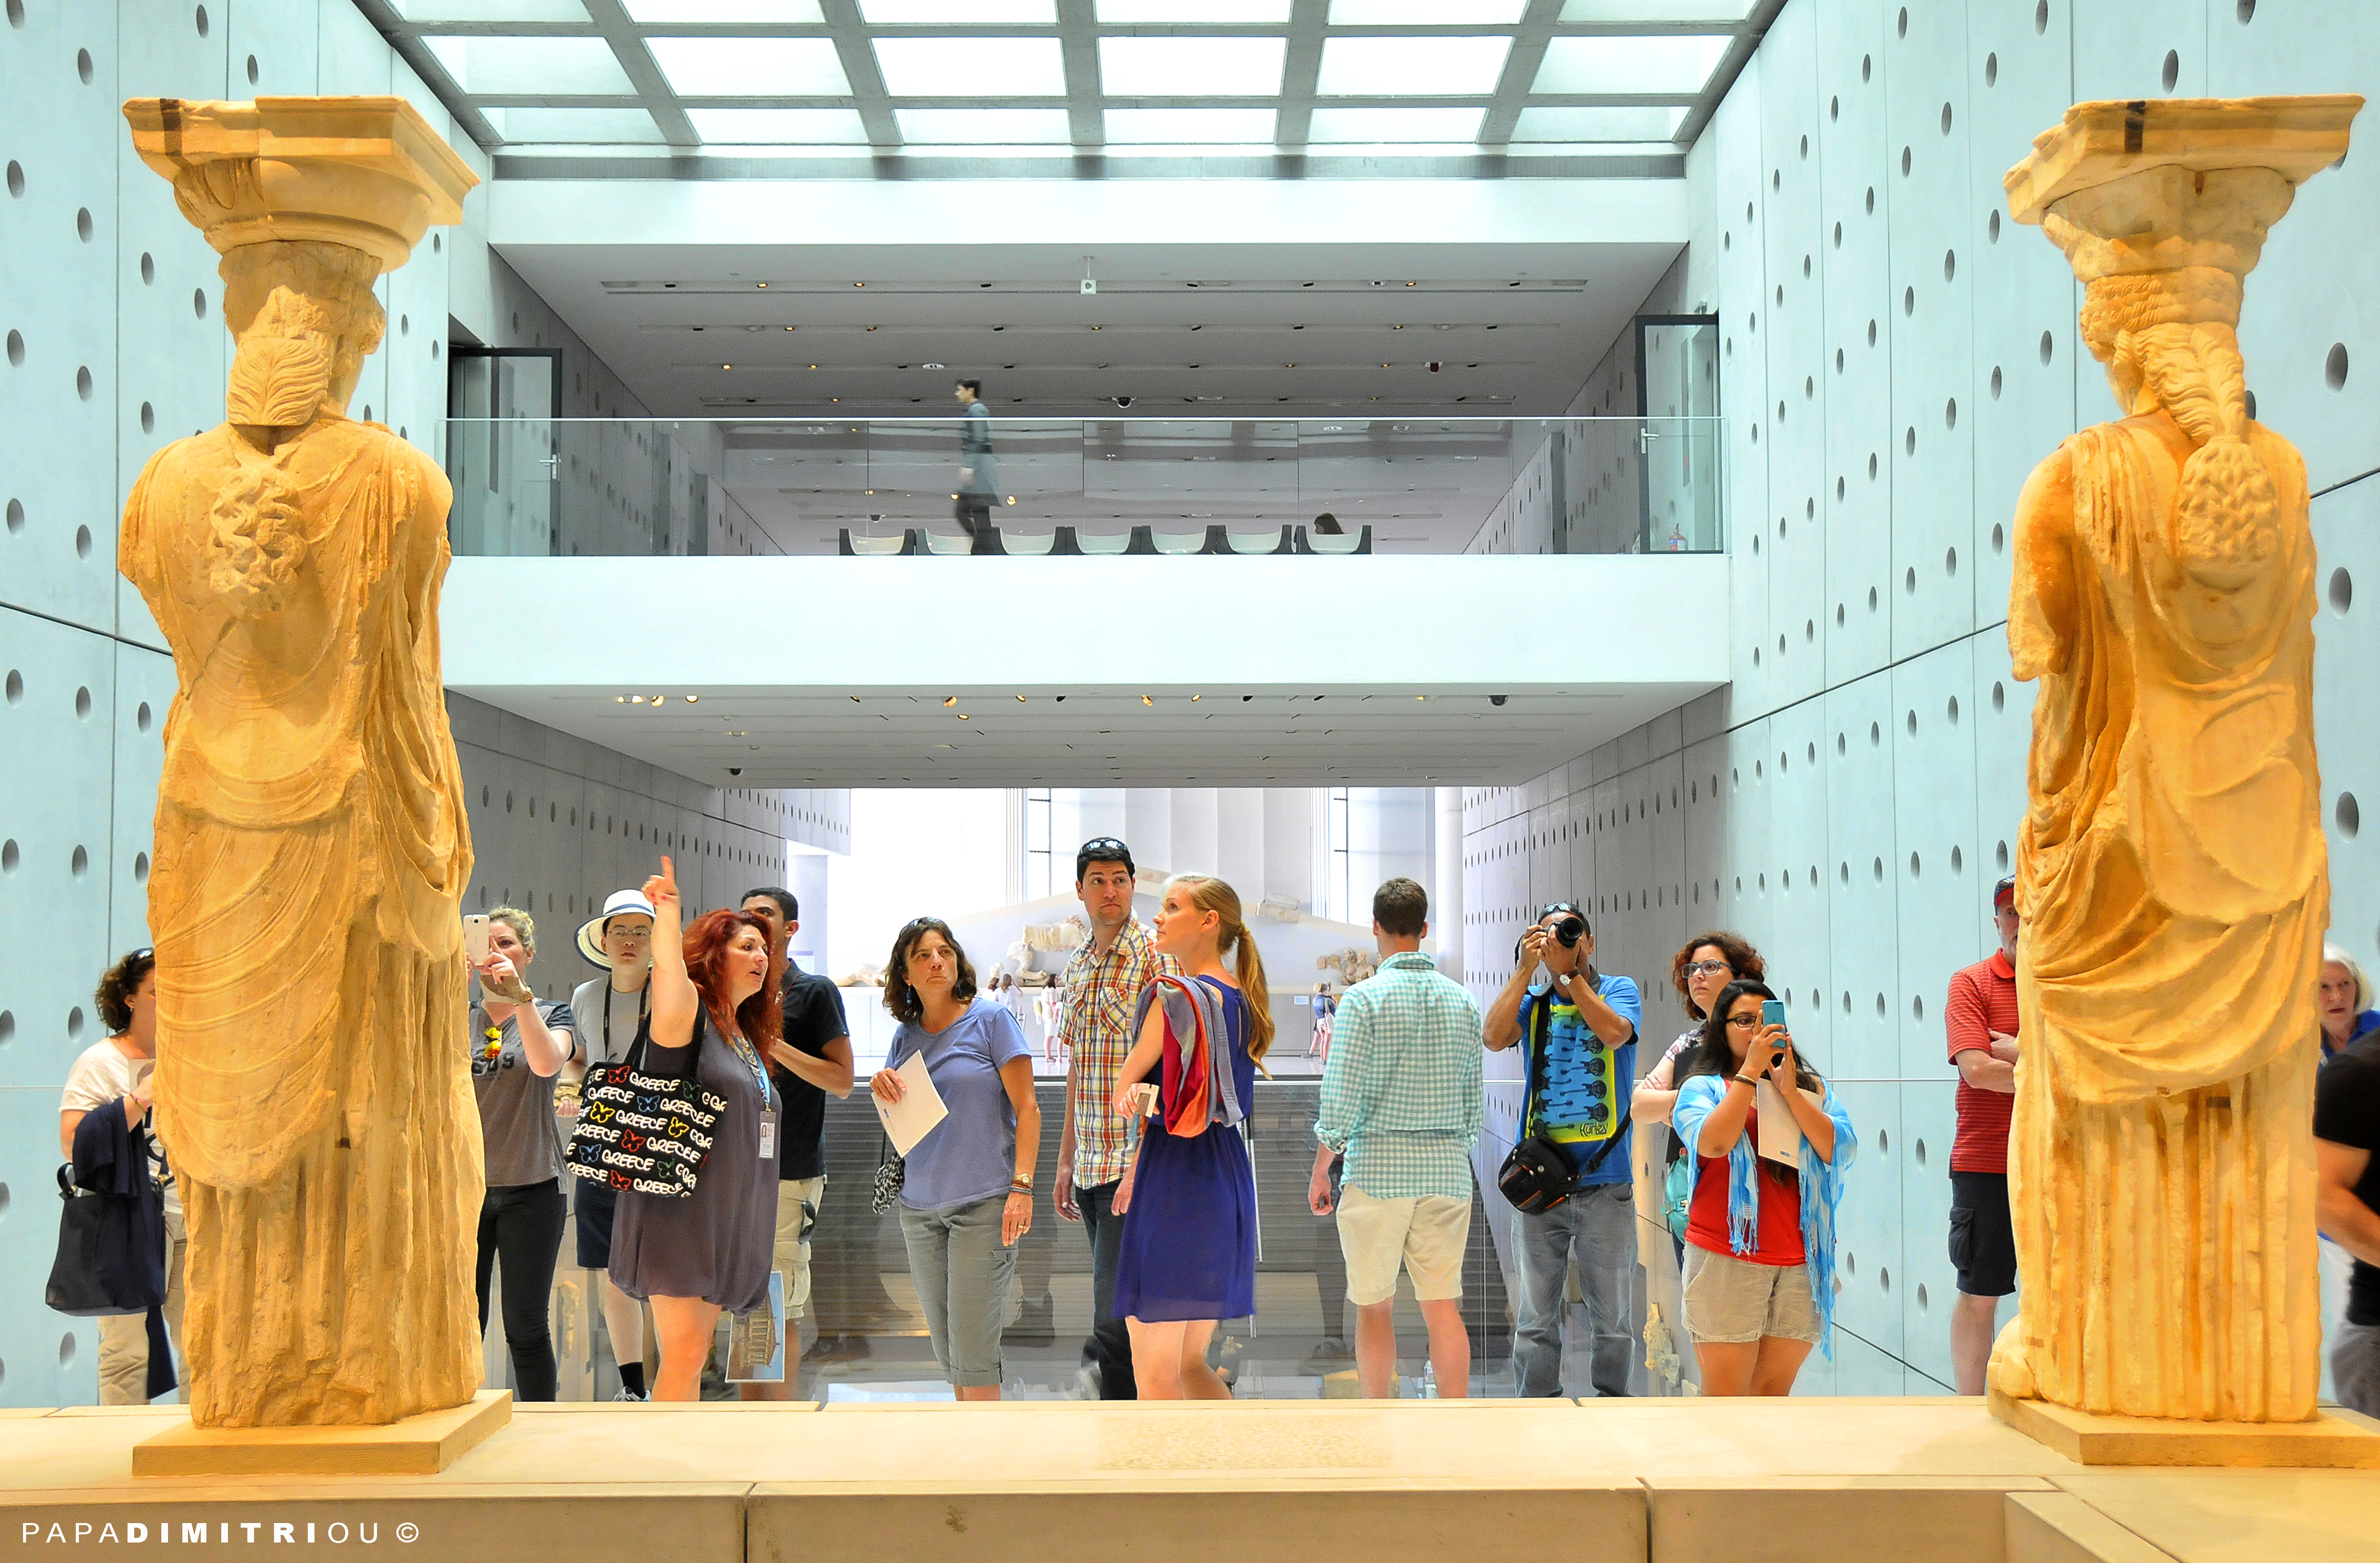 Visiting Greece may help you live longer: Linking the arts to well-being and longevity